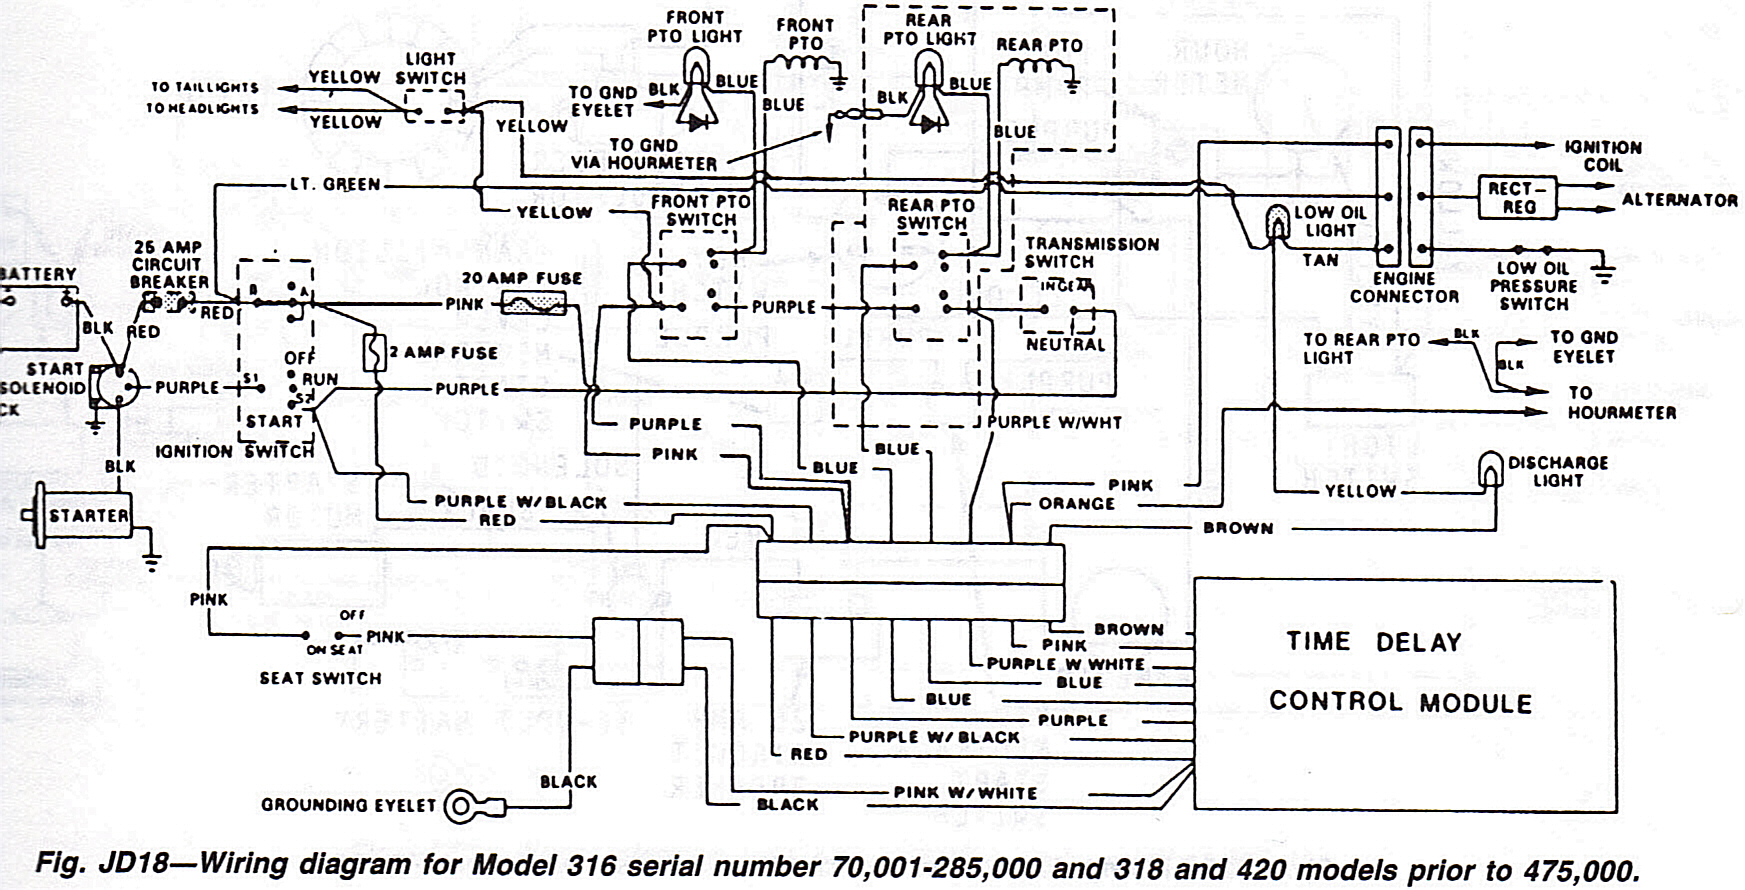 Onan Small Engine Wiring Diagram Library For Generator A040h348 F26aa68c 1c4b 4dfa Adc0 63dc66083608 Deere 316 318 420